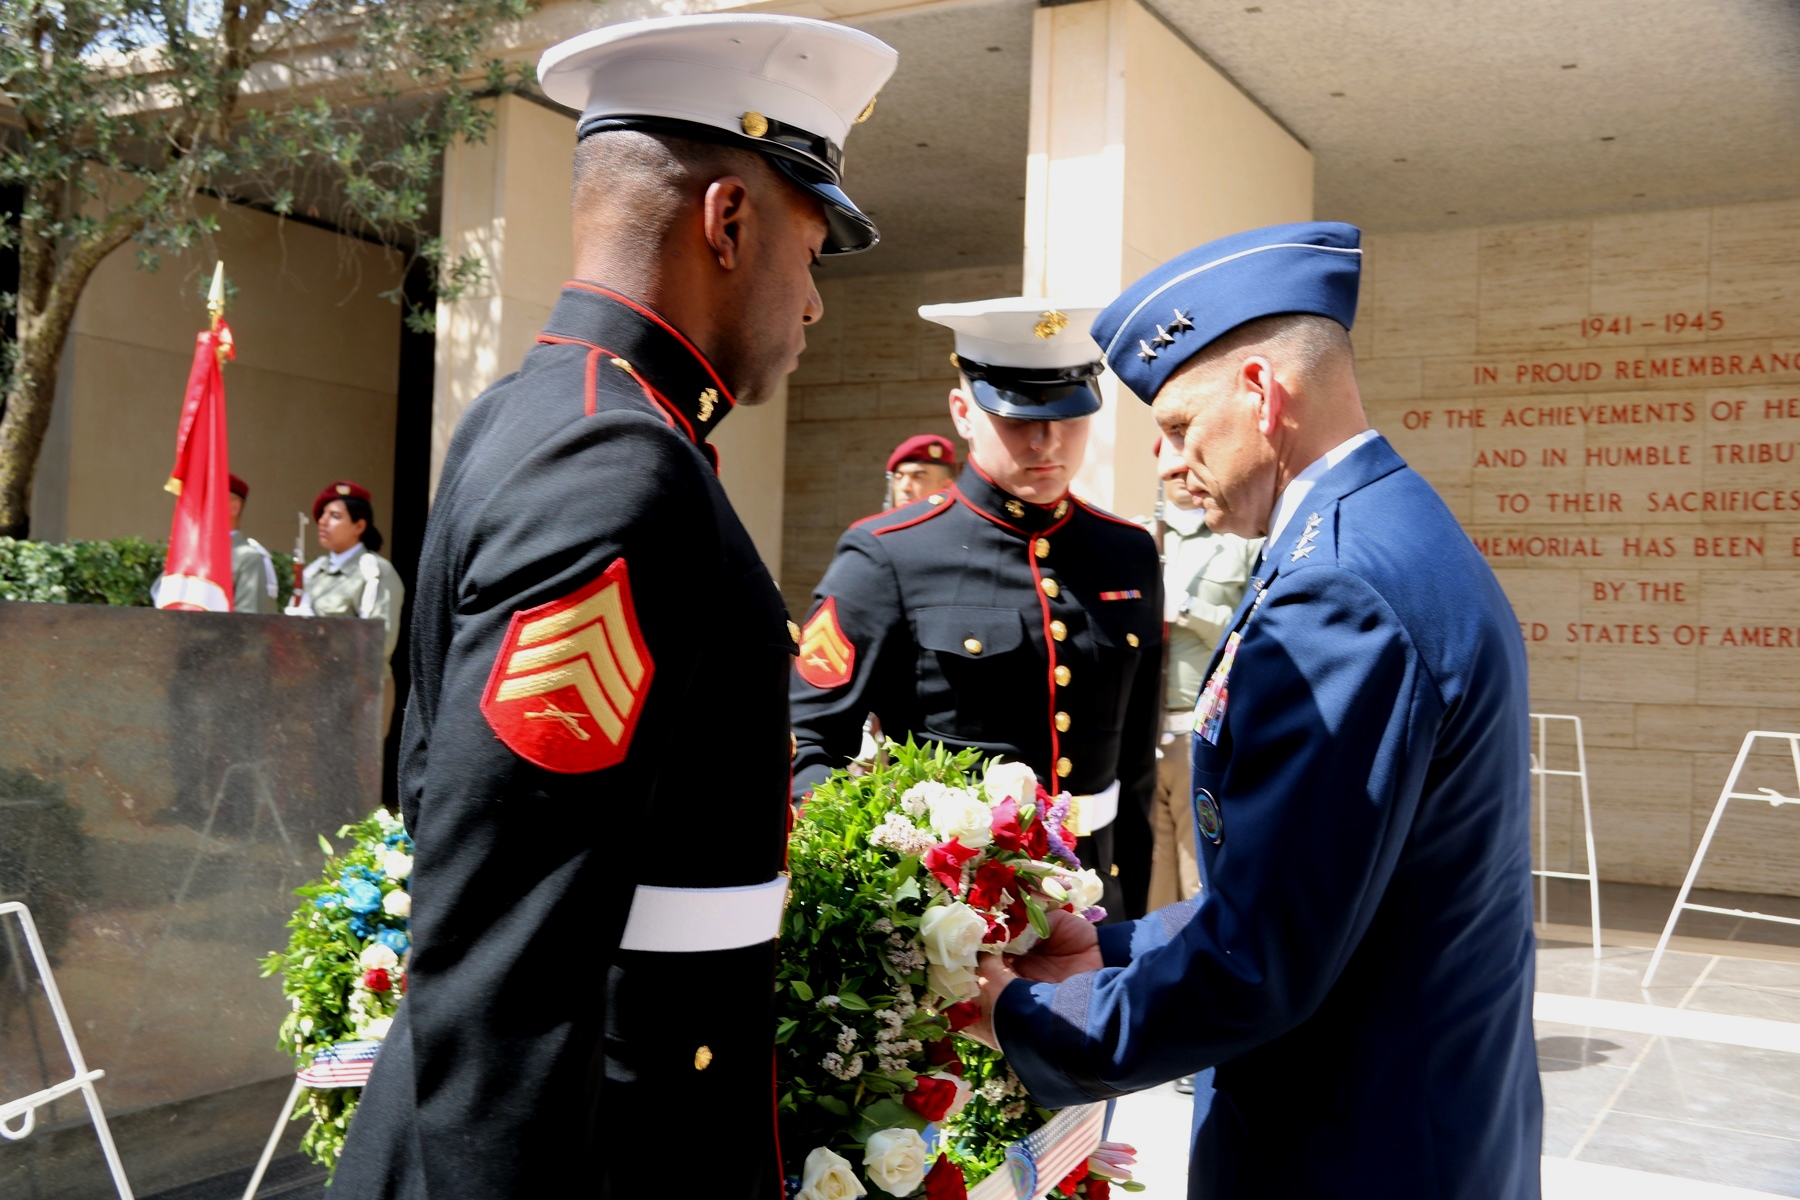 U.S. Air Force Lt. Gen. James C. Vechery, Deputy to the Commander for Military Operations, U.S. Africa Command lays a wreath to honor American servicemen during the Memorial Day ceremony in Carthage, Tunisia, May 28, 2018. (Photo by Zouhaier SFAXI, U.S. Embassy Tunis)